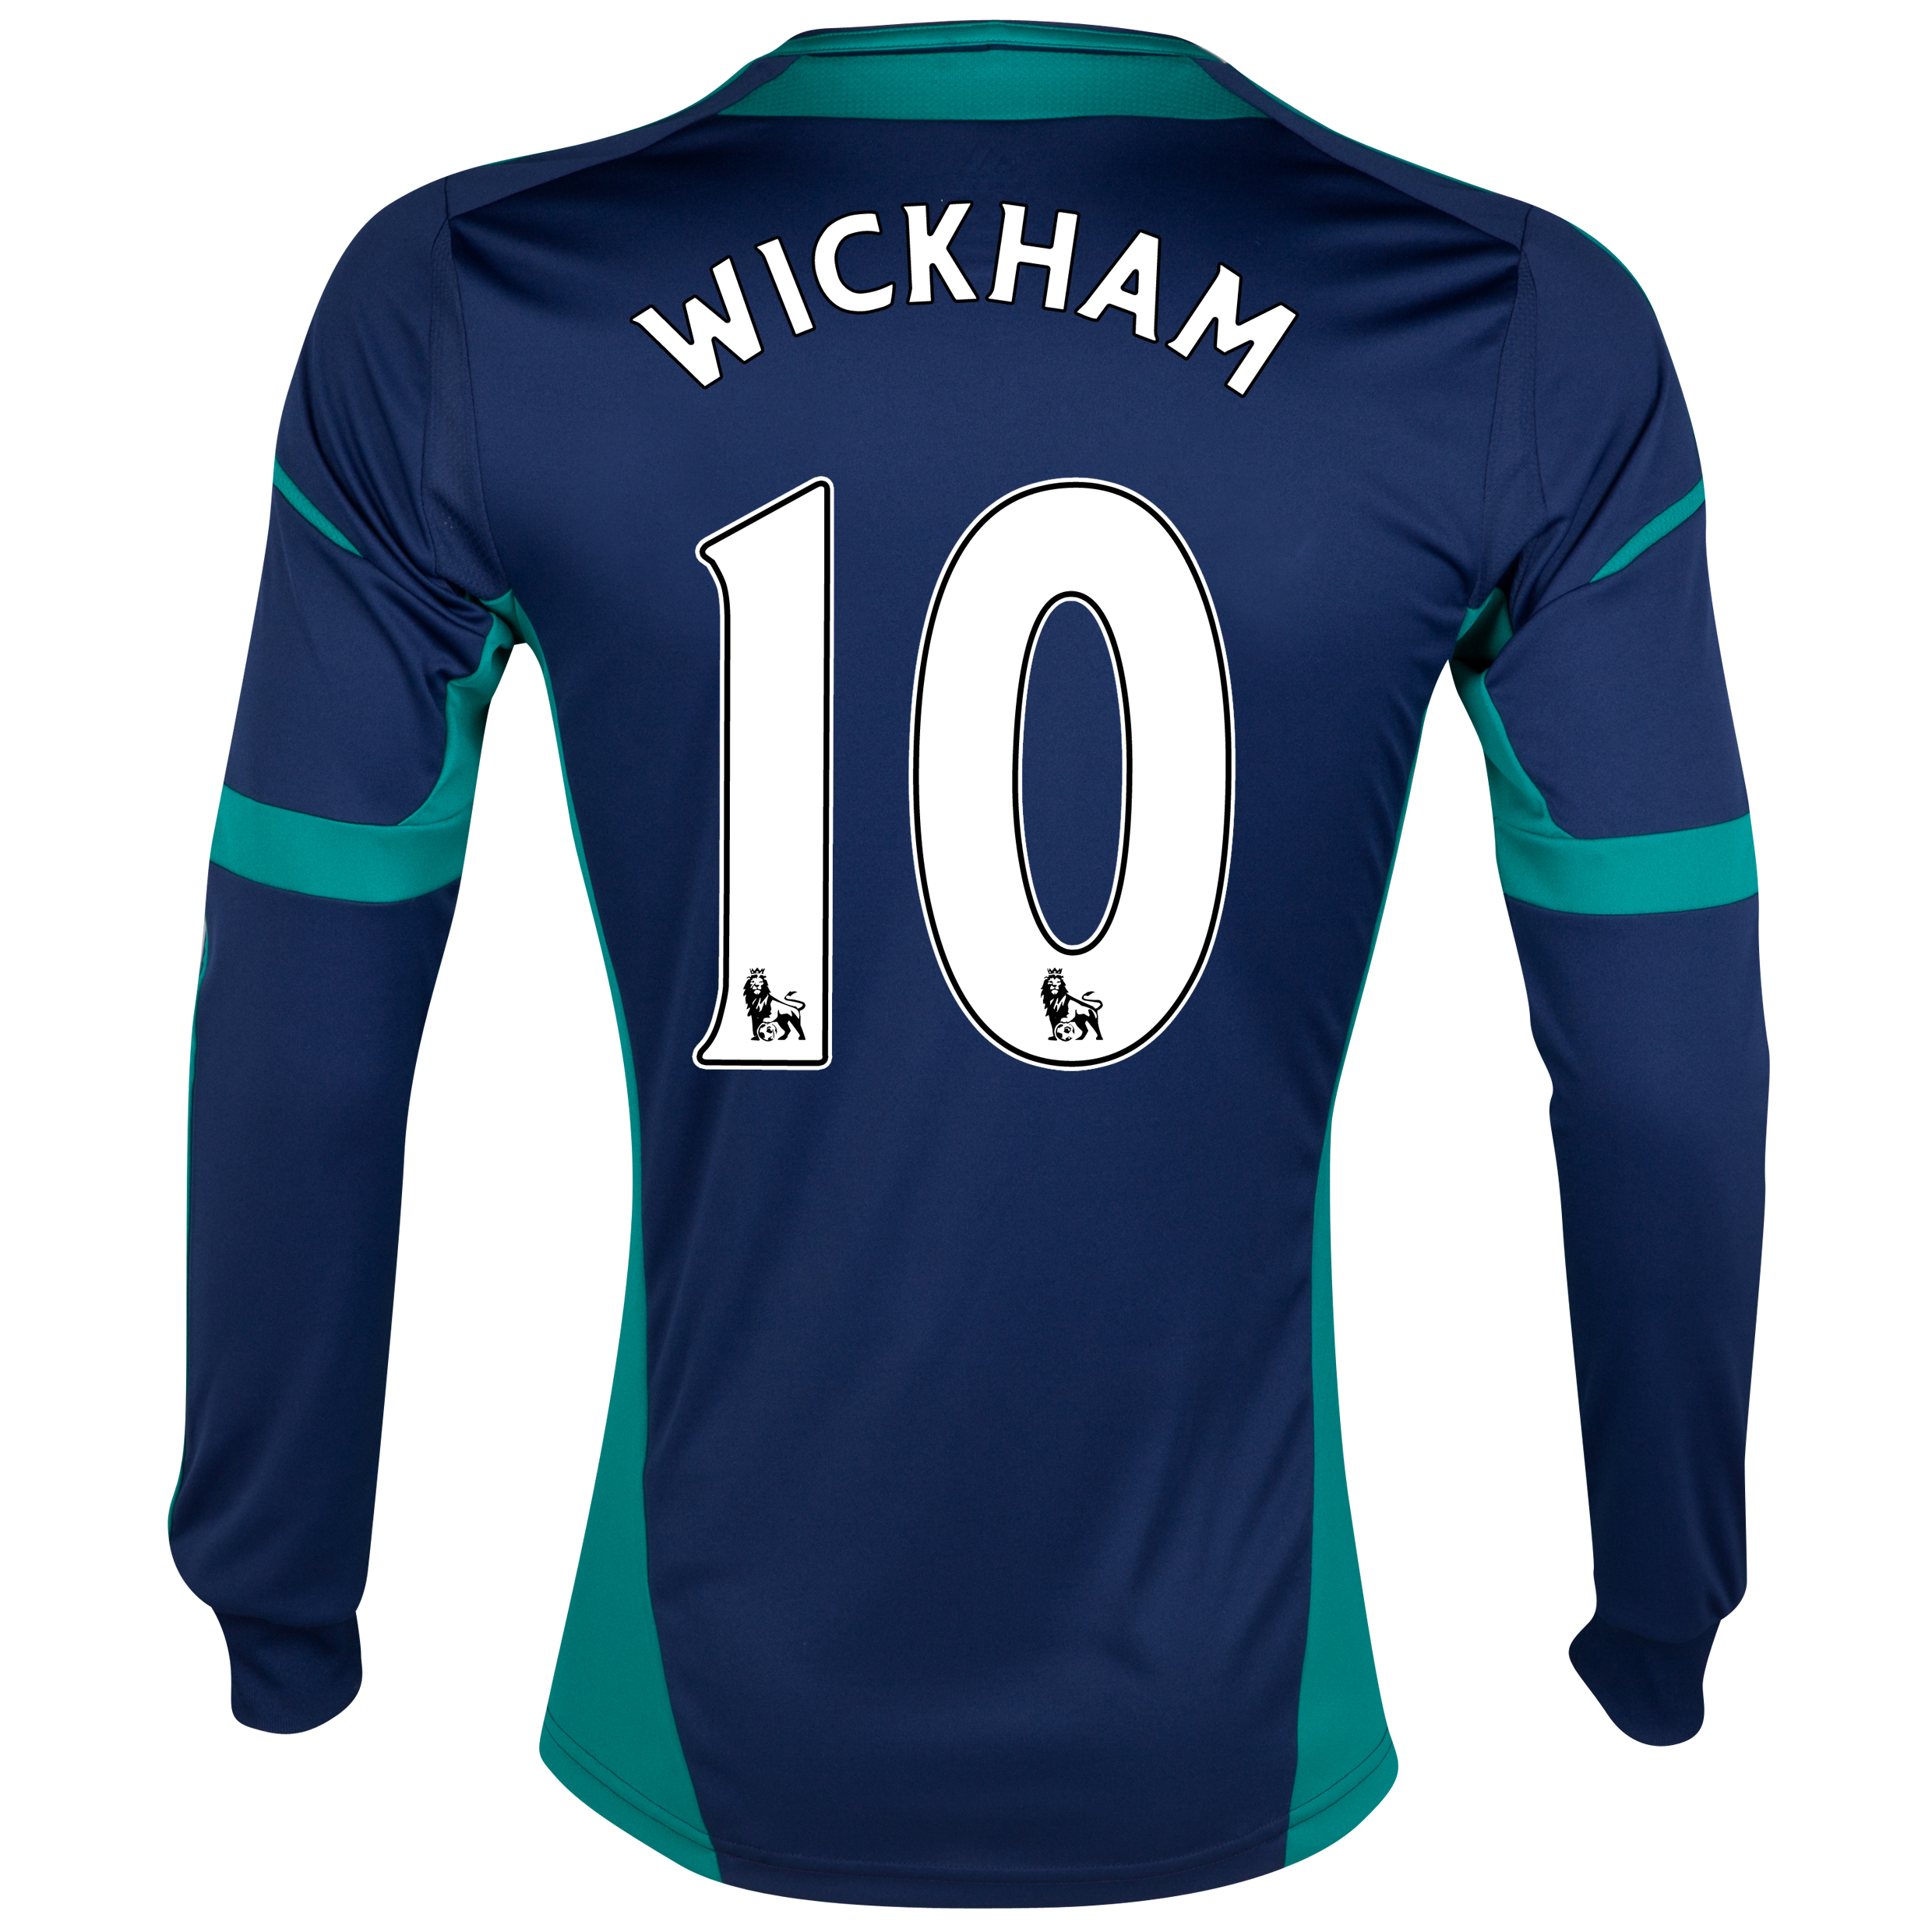 Sunderland Away Shirt 2012/13 - Long Sleeved with Wickham 10 printing